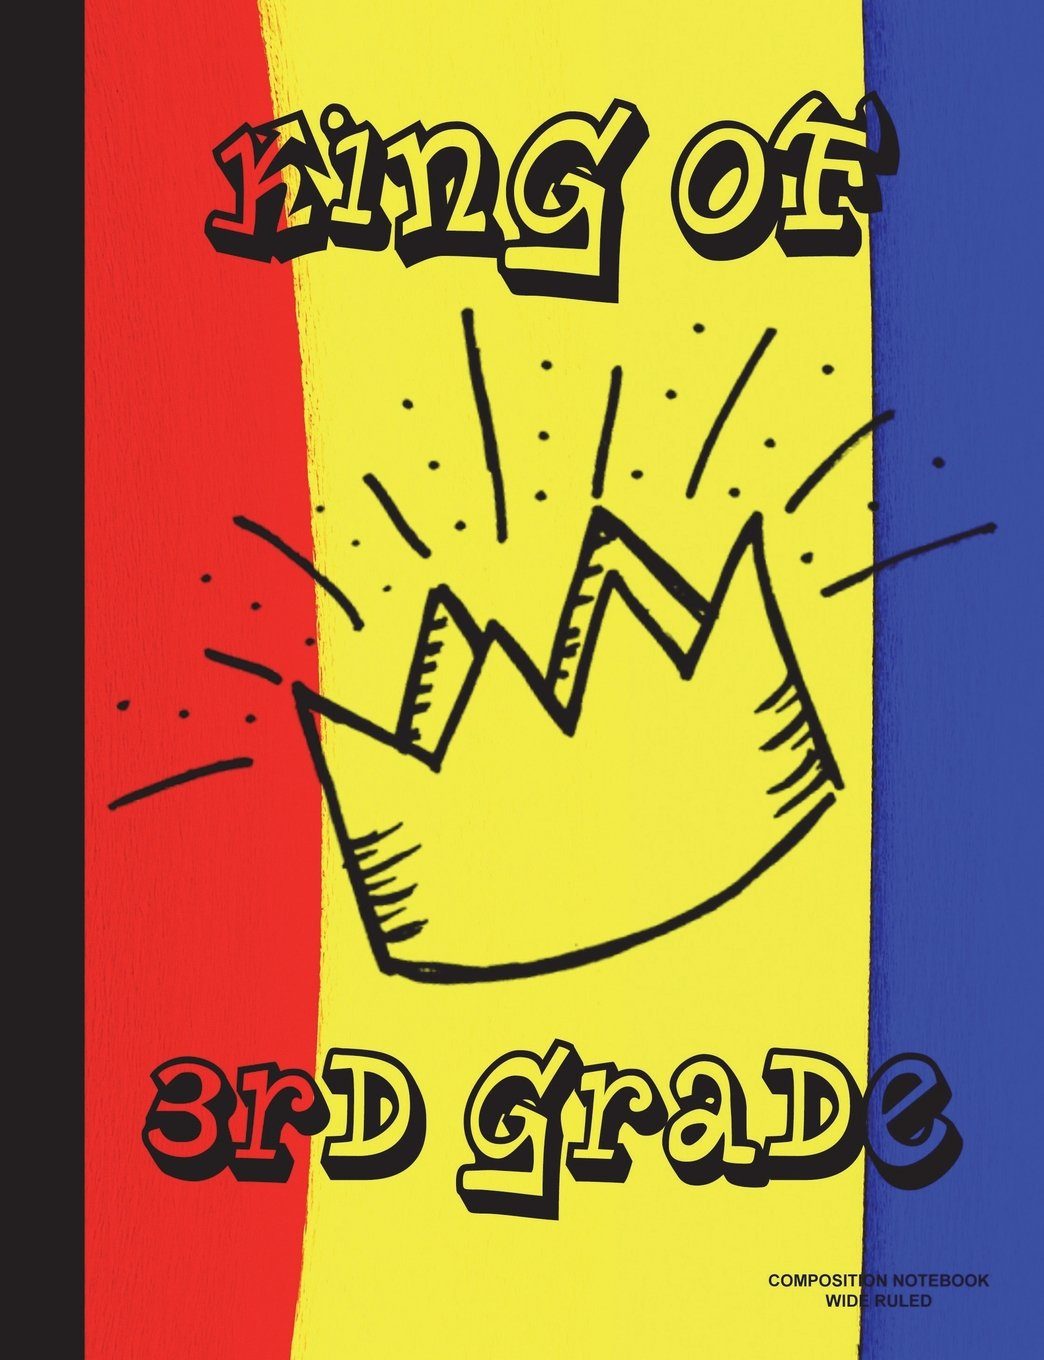 King of 3rd Grade Composition Notebook: Composition Book for 3rd grader, elementary students, subject daily journal for school, creative writing homework journal, 100 pages pdf